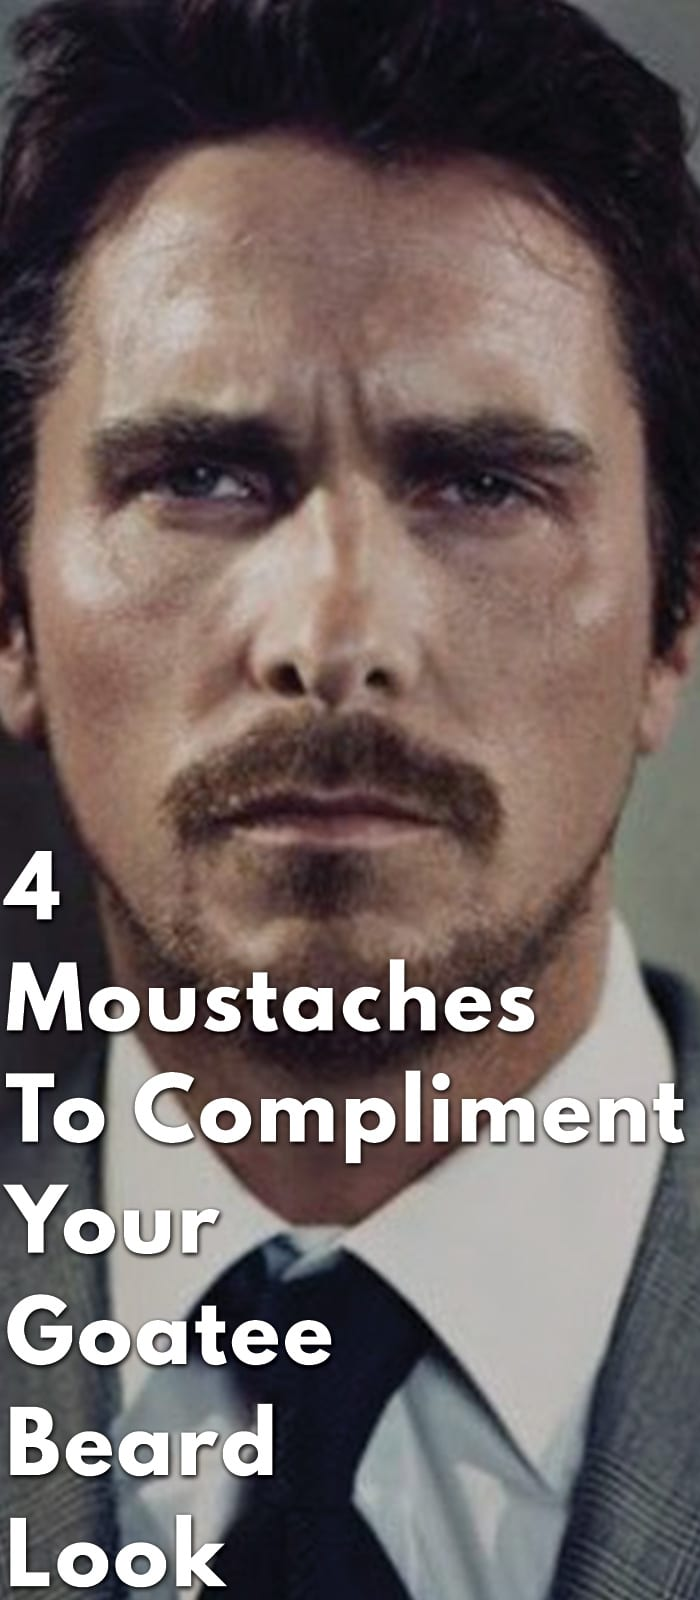 4-Moustaches-To-Compliment-Your-Goatee-Beard-Look.